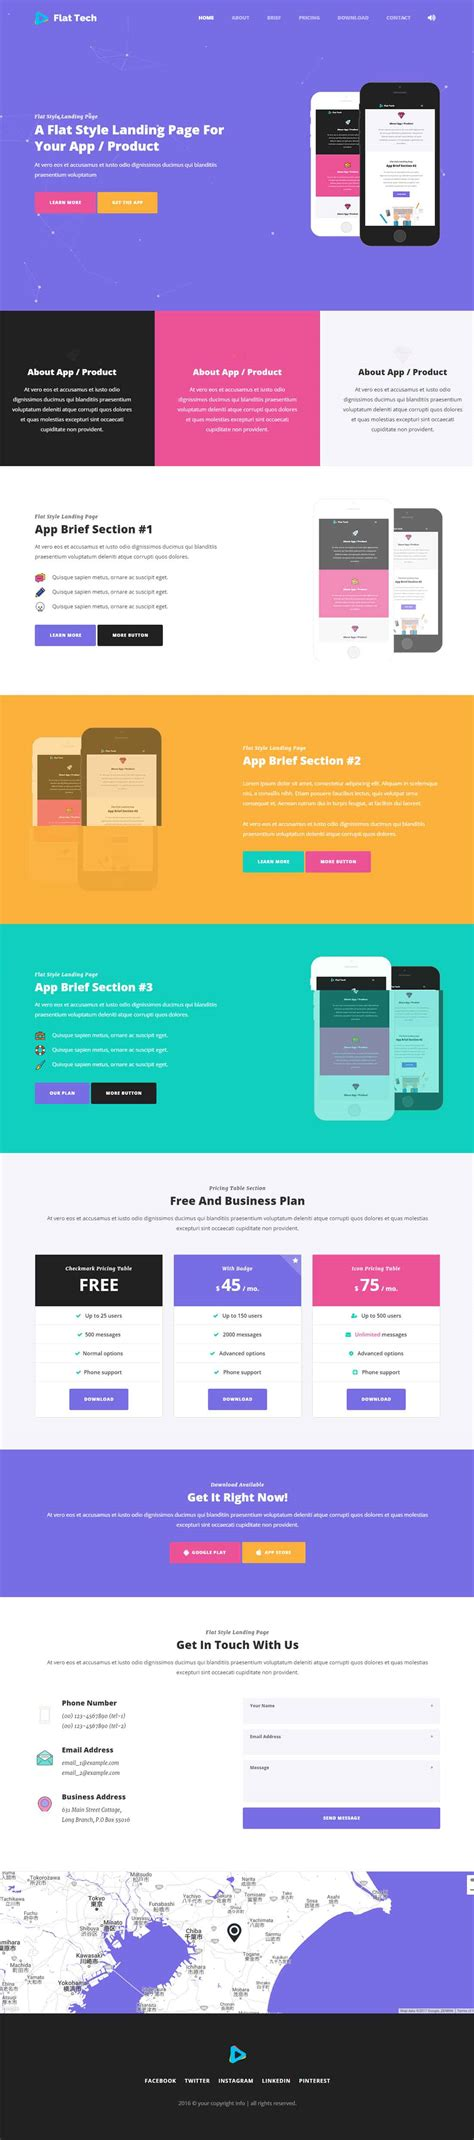 flat tech flat one page app landing page template